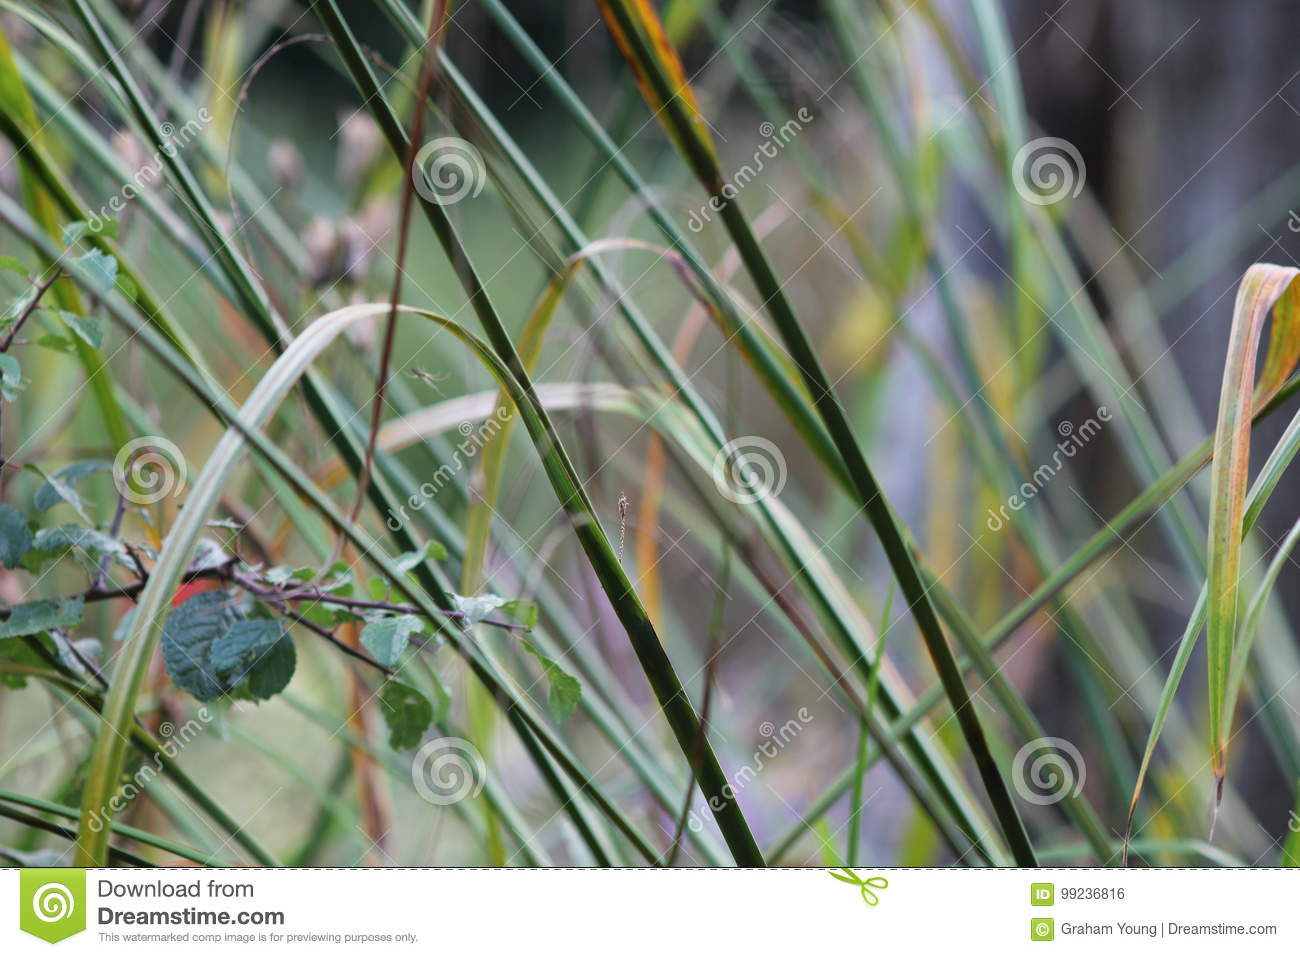 Grasses in English garden, closeup, with lavender and small flowes 3